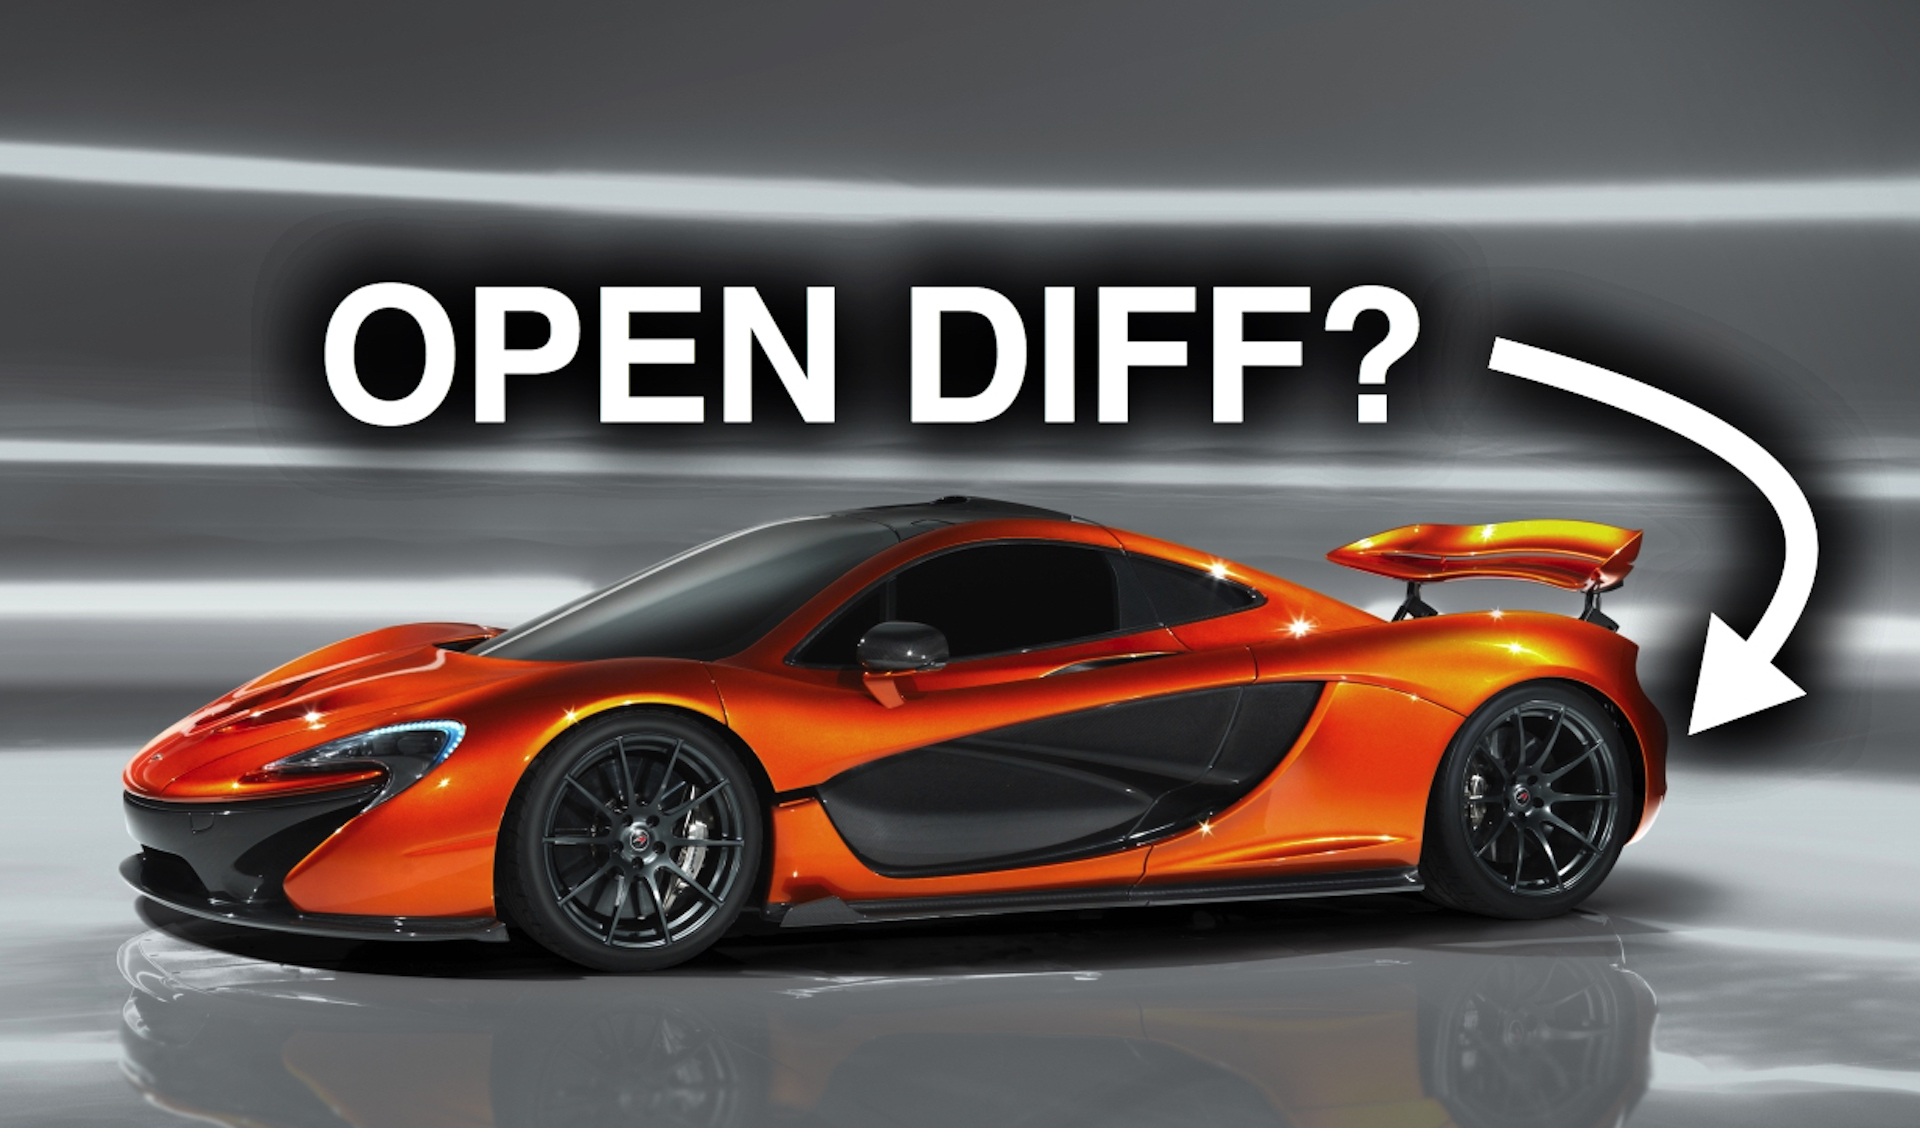 Why Does The Mclaren P1 Have An Open Differential